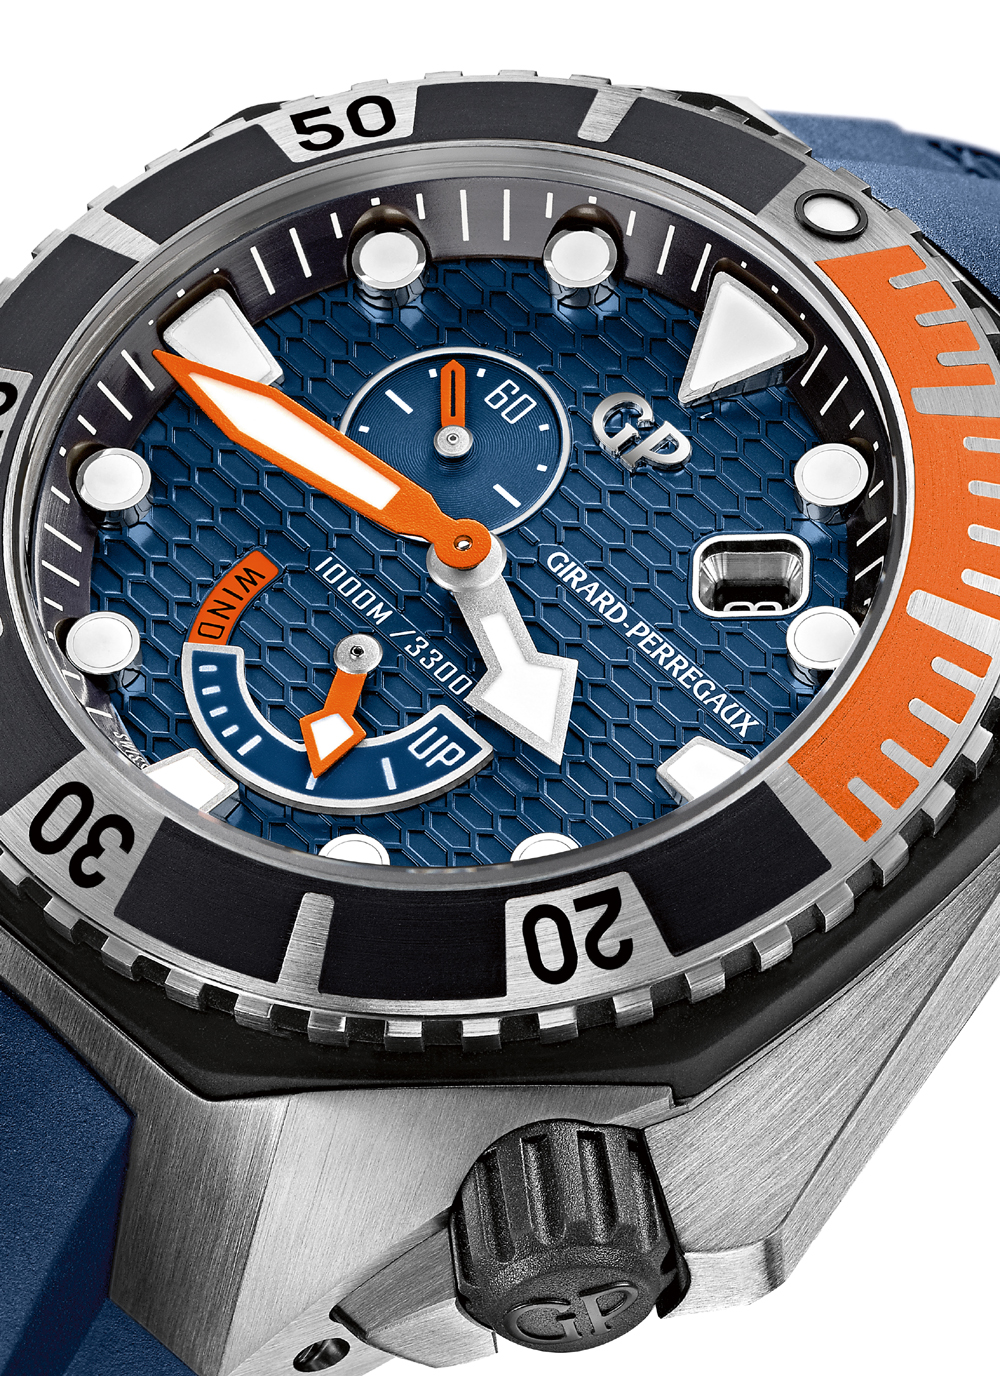 Montre Girard-Perregaux Sea Hawk